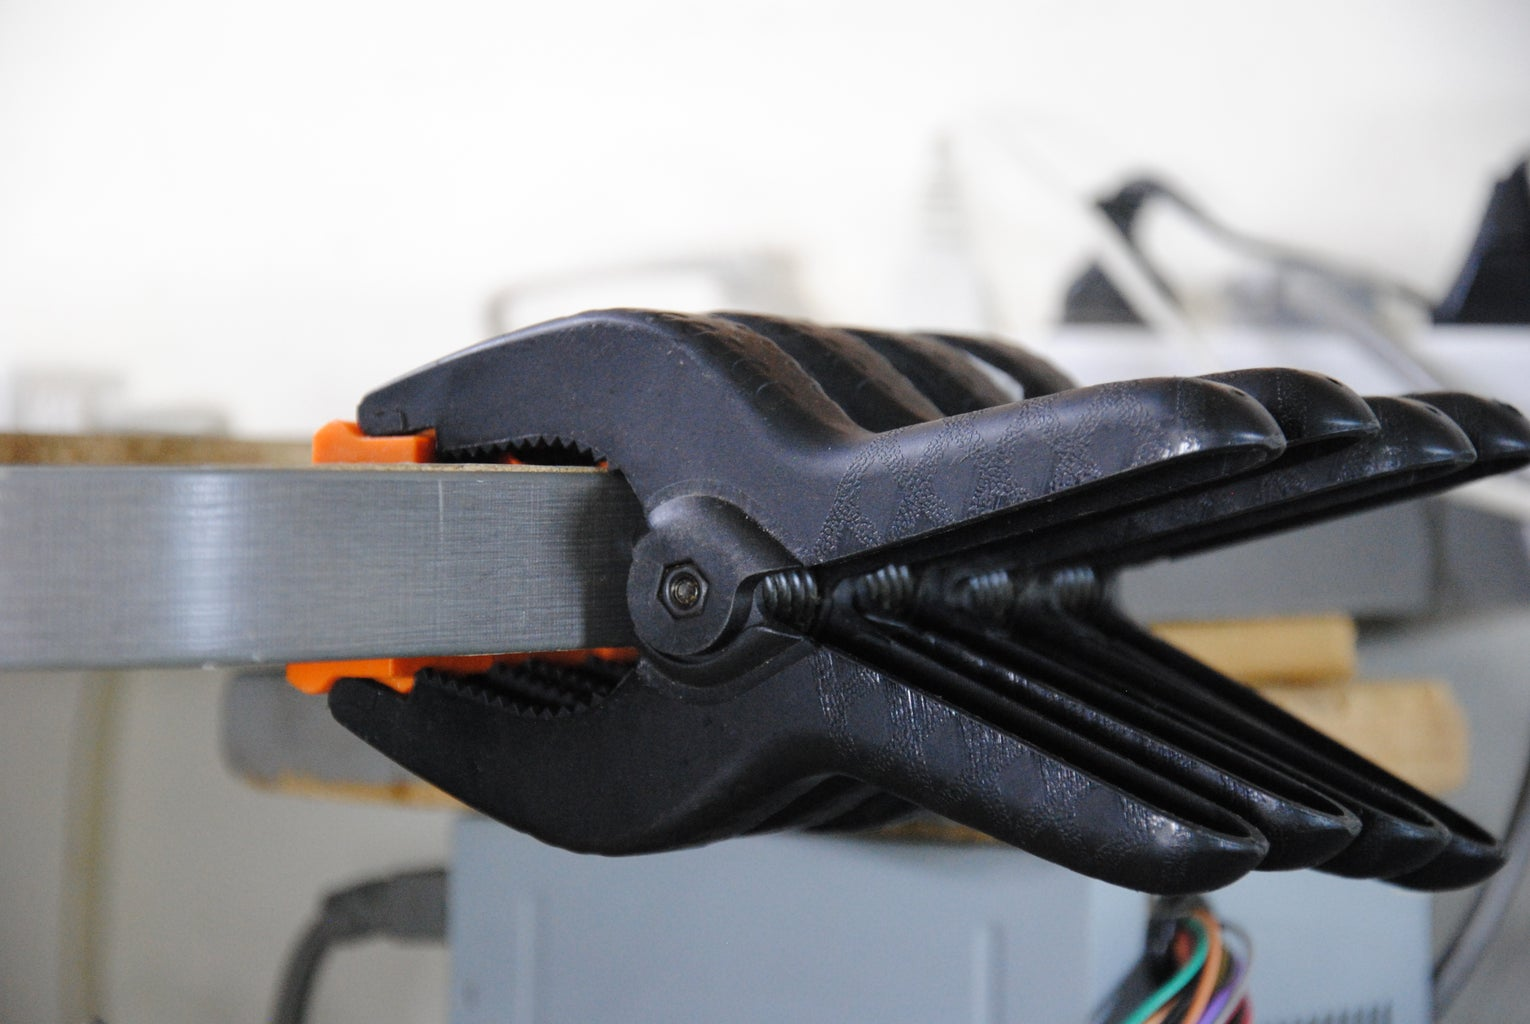 Clamp Clamps to the Edge of Your Workbench